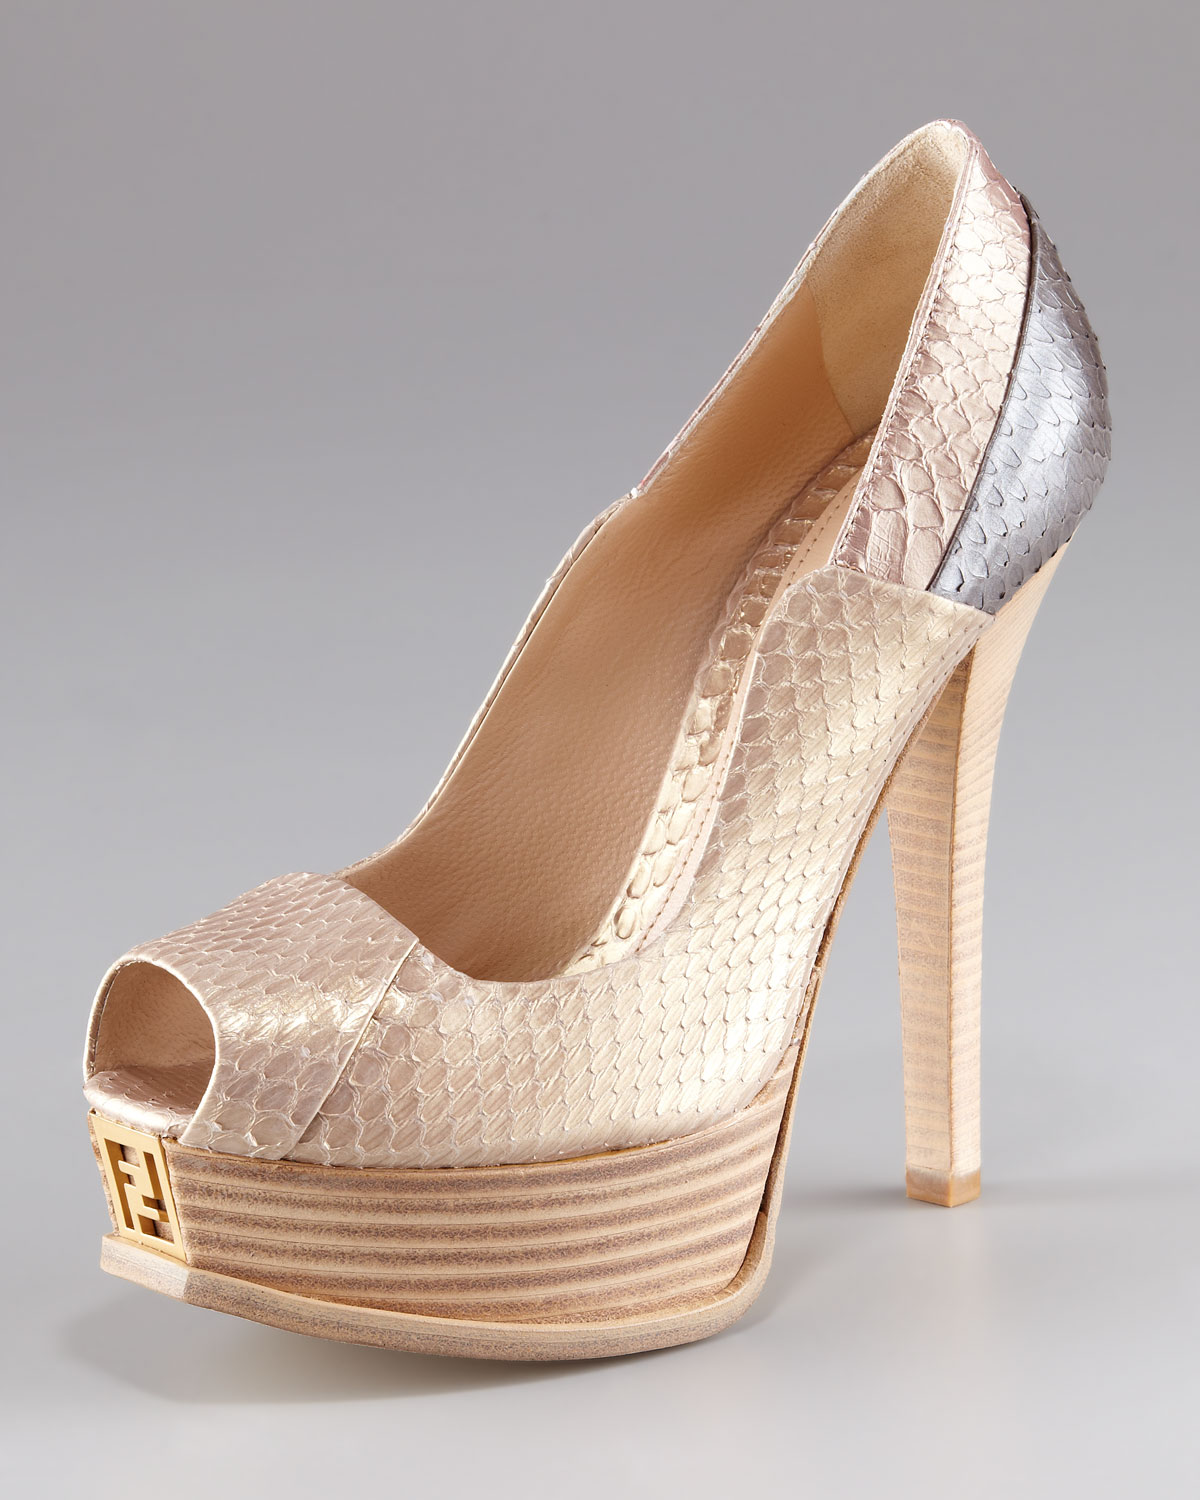 5041e2fb4e0 Lyst - Fendi Fendista Snakeskin Platform Pump in Natural